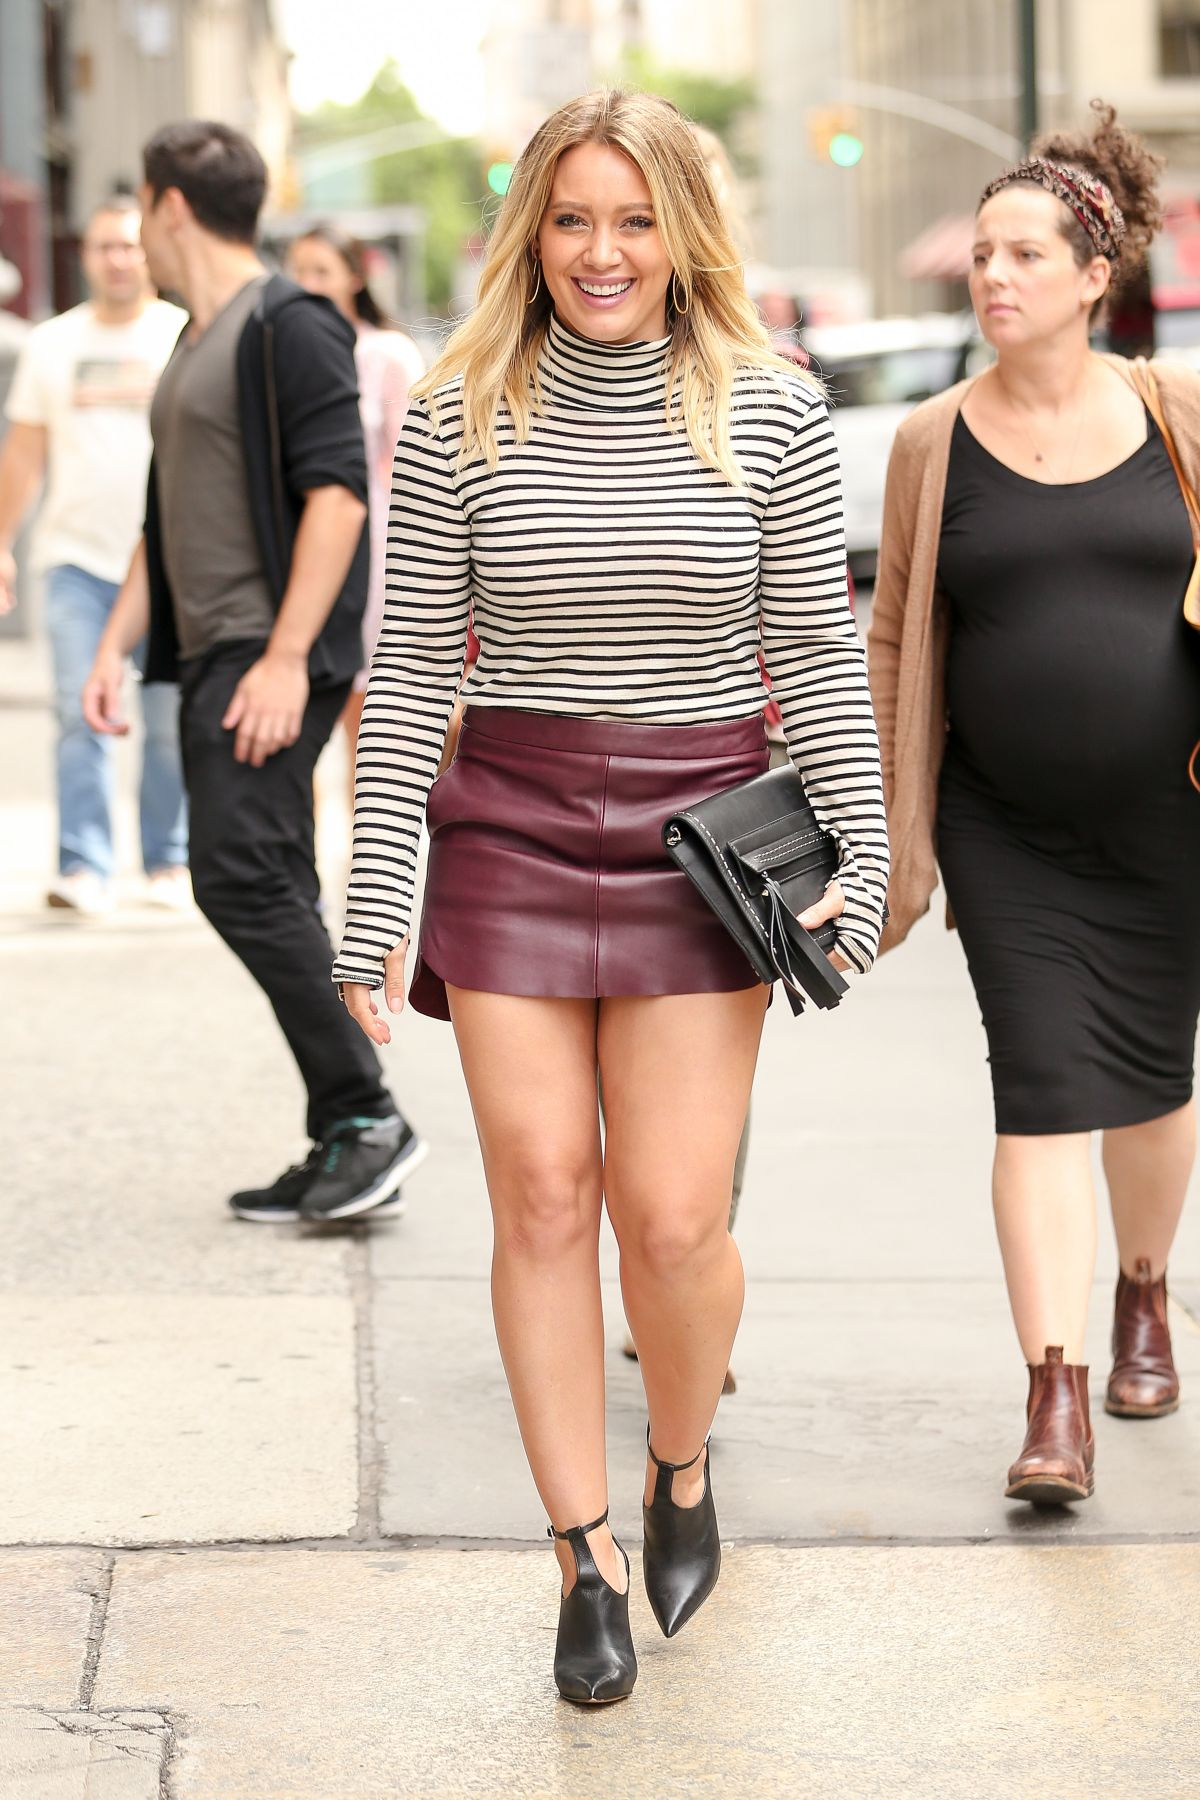 hilary duff heading to lunch with friends at abc kitchen in new